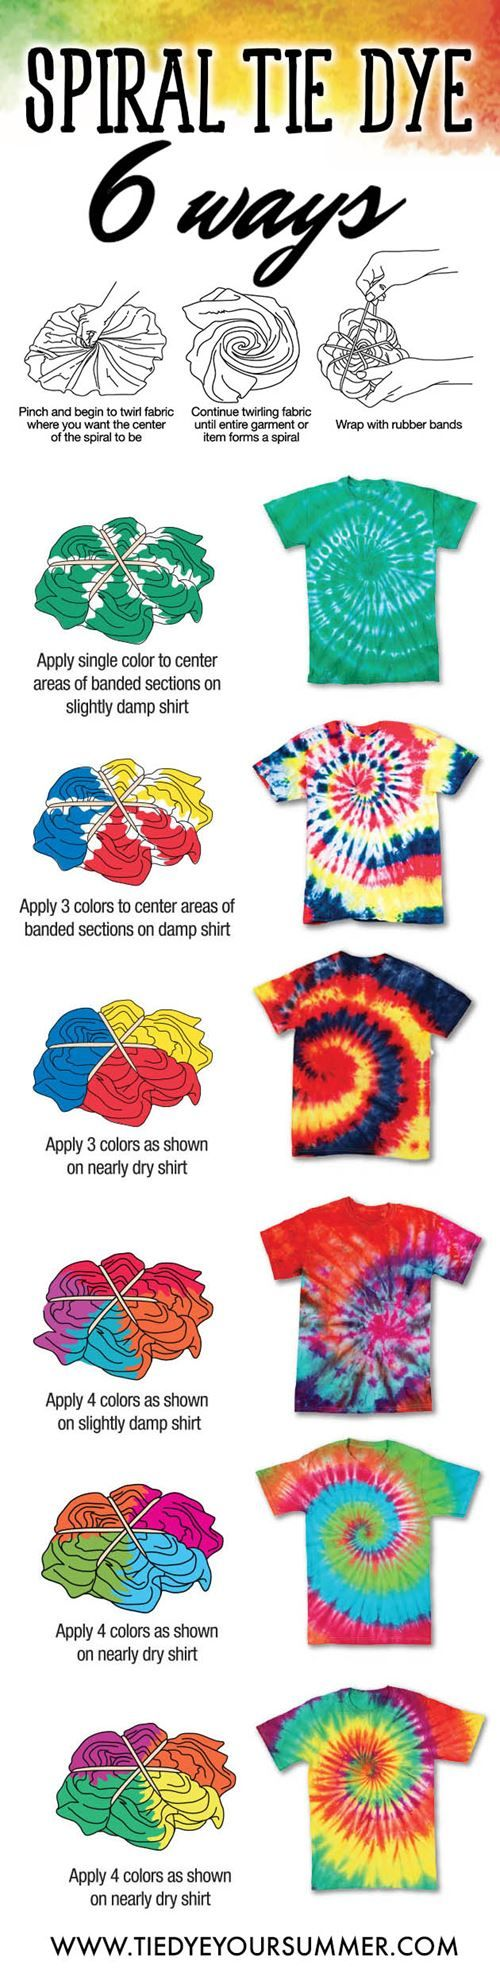 0b6ee930 6 ways to do SPIRAL tie dye!!! How to tie dye and get great results ... all  you need is Tulip One-Step Tie Dye!